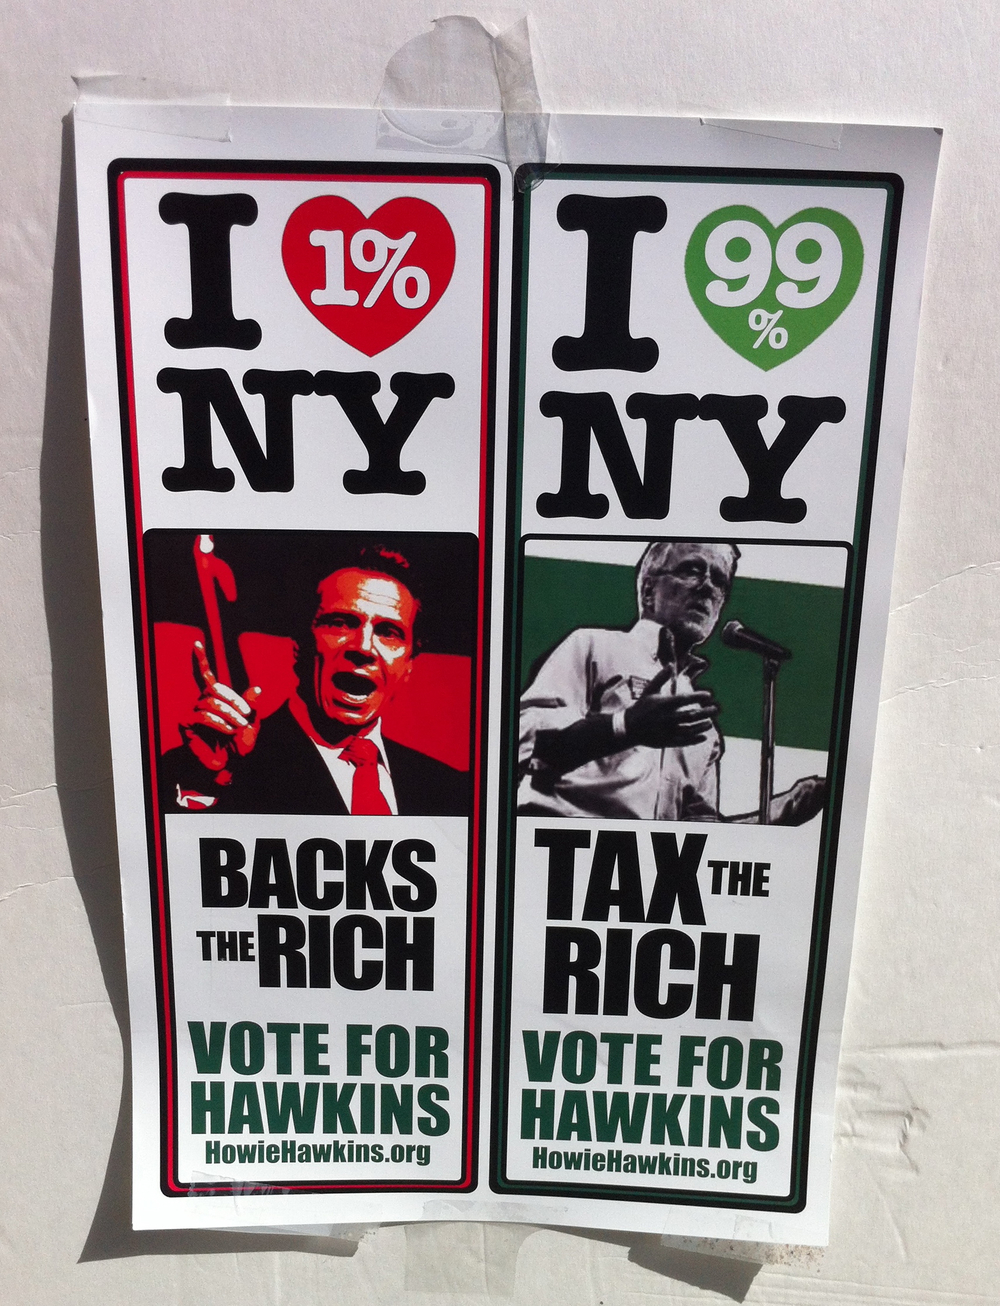 At the farmers' market in Jackson Heights on Sunday, volunteers for Howie Hawkins' gubernatorial campaign distributed flyers and displayed the campaign's latest illustration that was also being circulated via social media.  Source :  Louis Flores